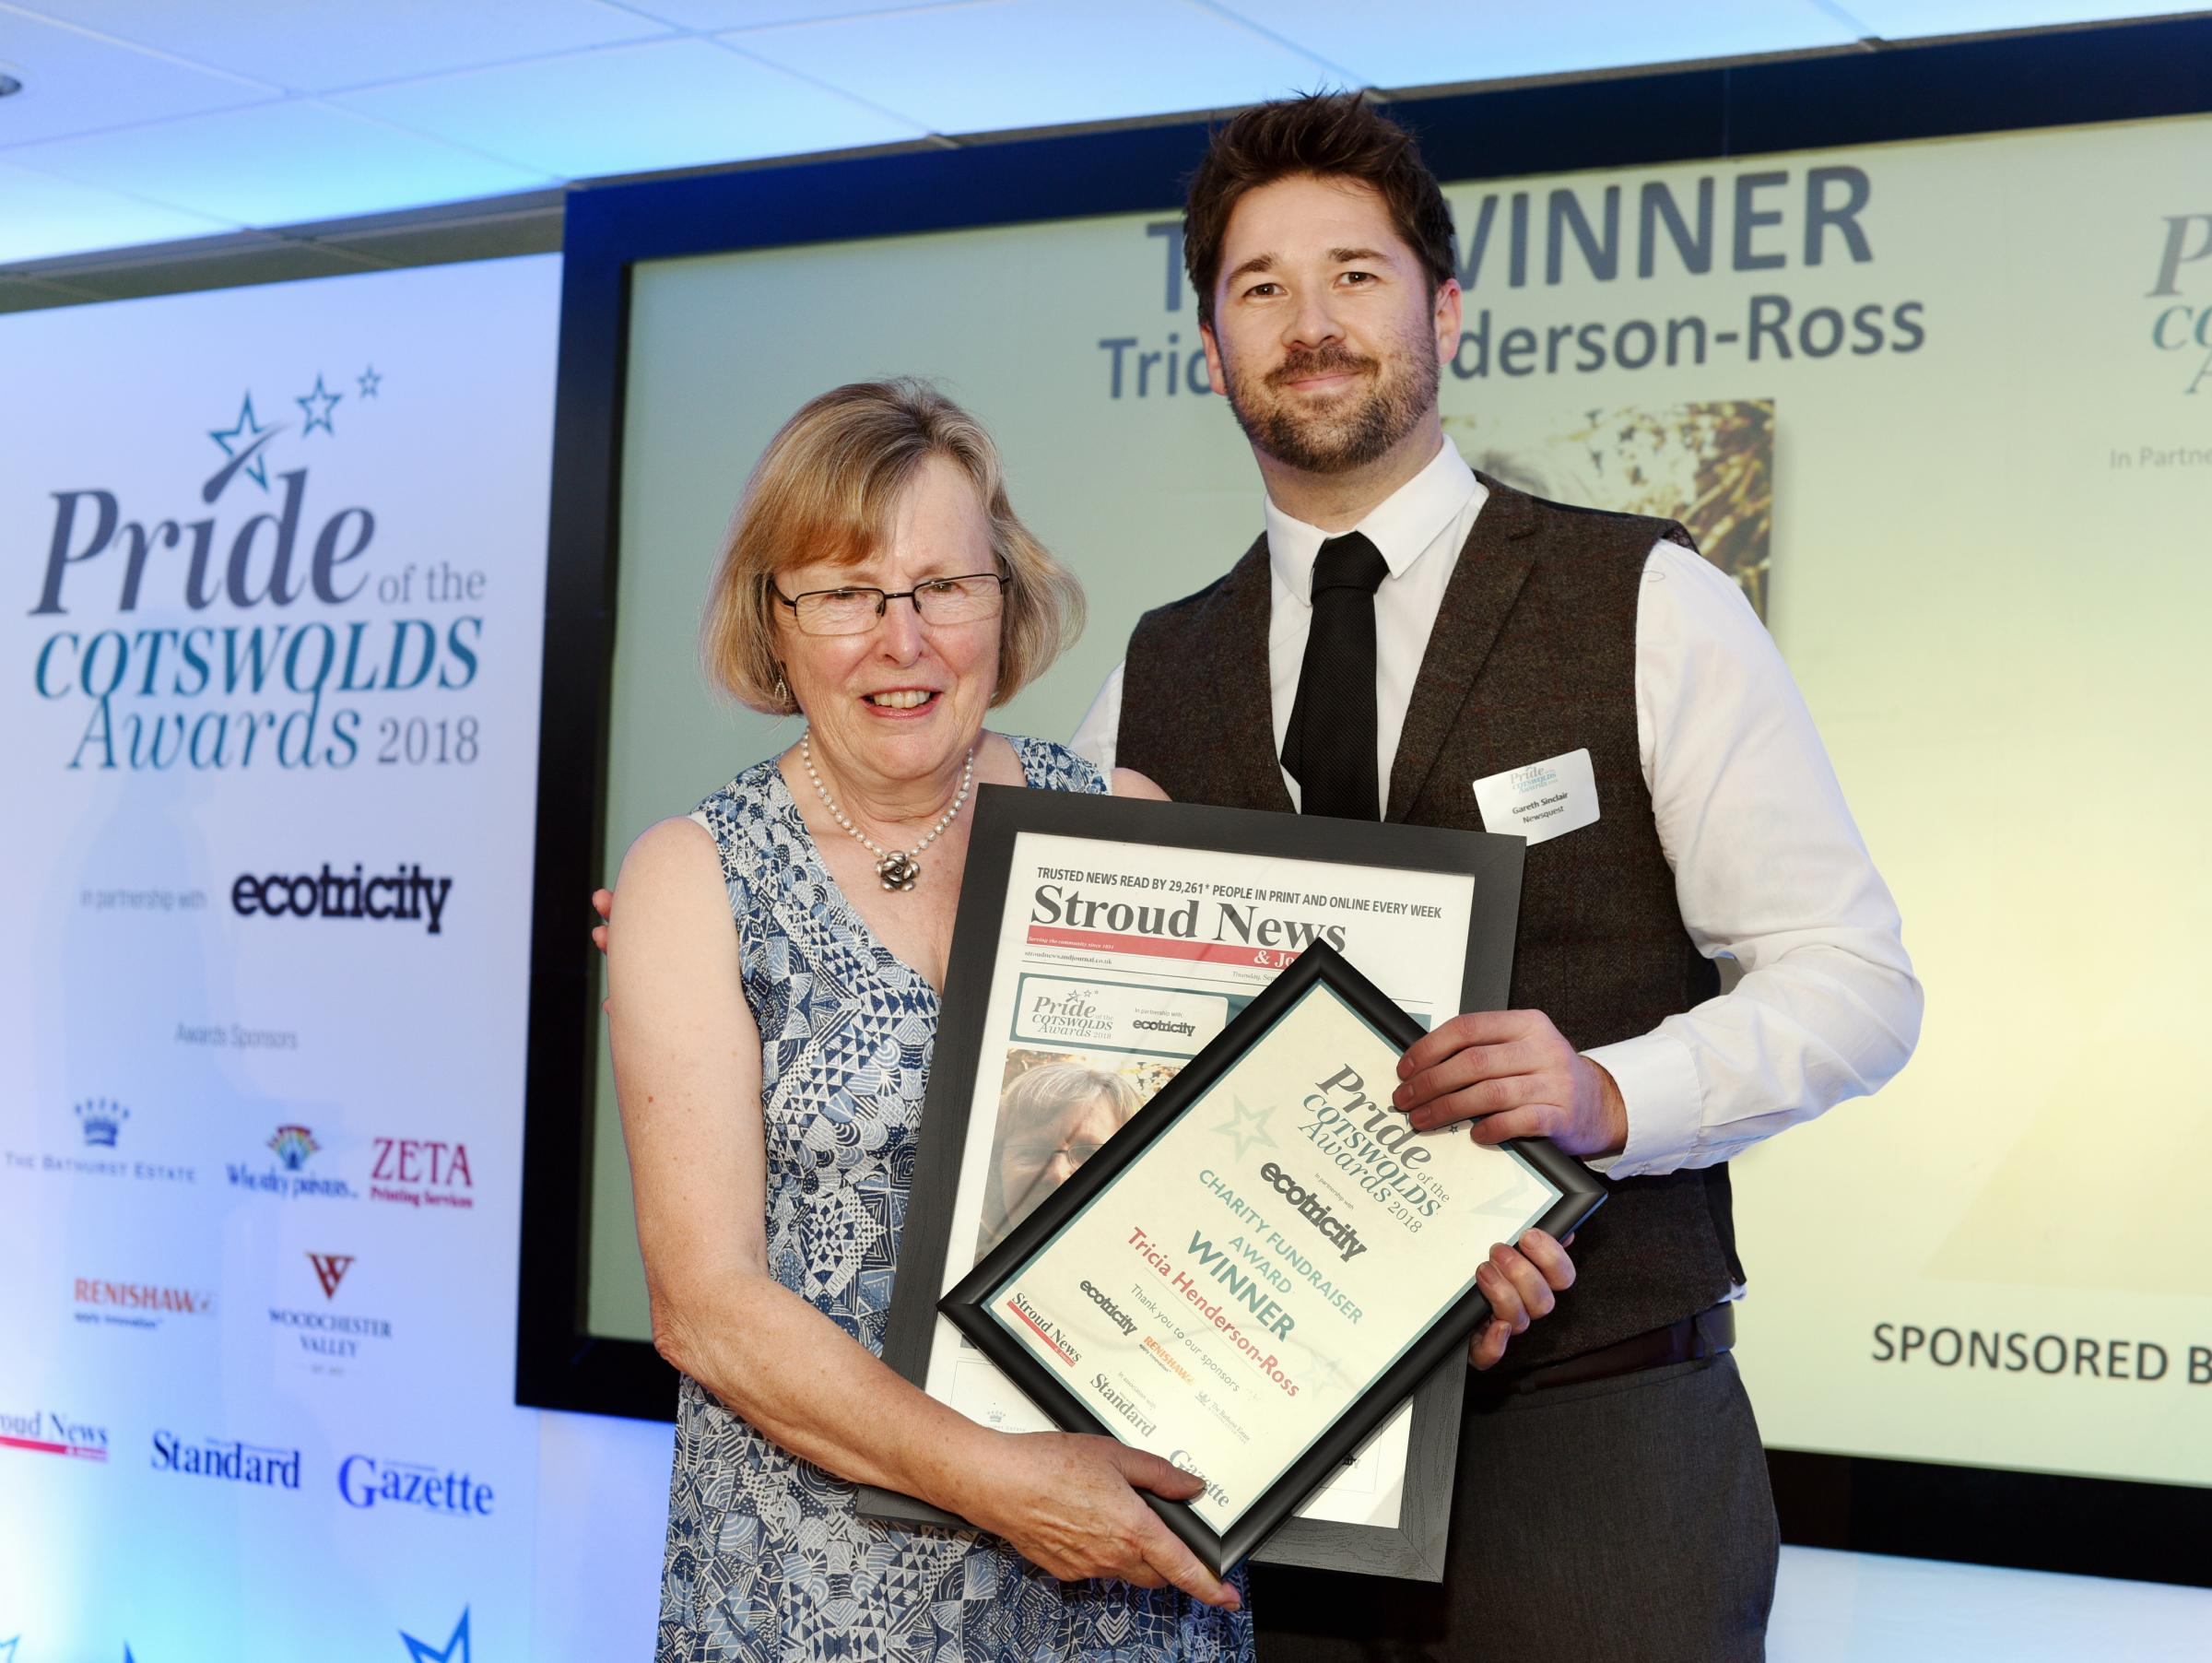 SEPT 20  2018         ....PHOTOGRAPHER  Simon Pizzey ....Tricia Henderson Ross recieves her award for Chrity Fund Raising from Wilts and Glos Display Manager Gareth Sinclair........Pride of the Cotswolds Awards,  at  Forest Green Rovers....